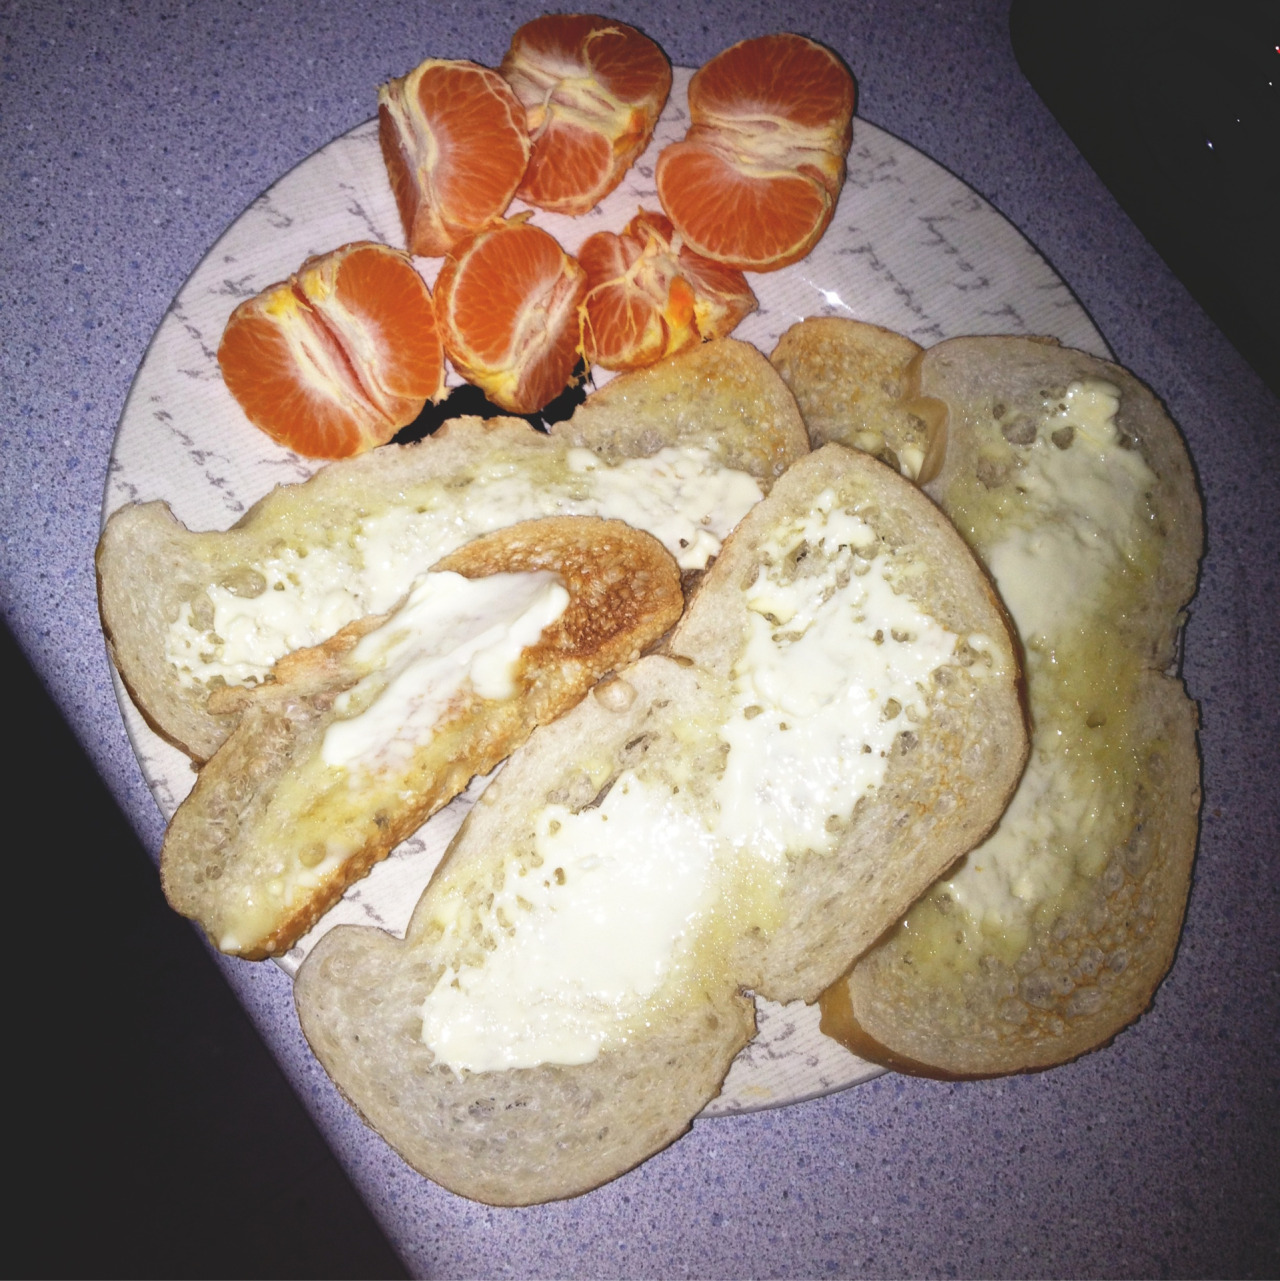 Munchie snacks last night: clementines with butter n' bread